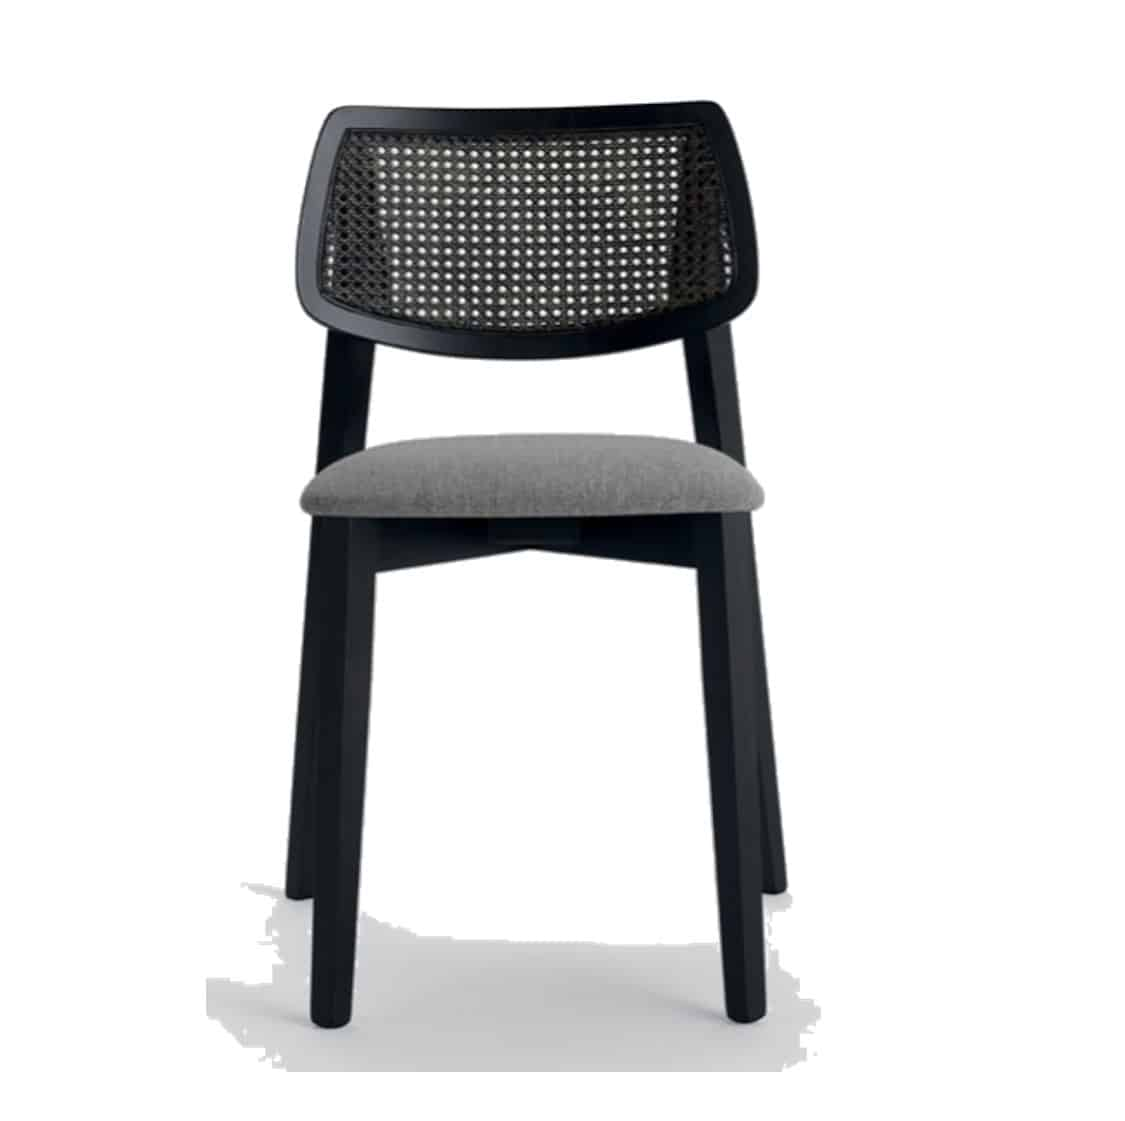 Alma Side Chair Wooden Restaurant Chair Weave Seat DeFrae Contract Furniture Cane Back Rest